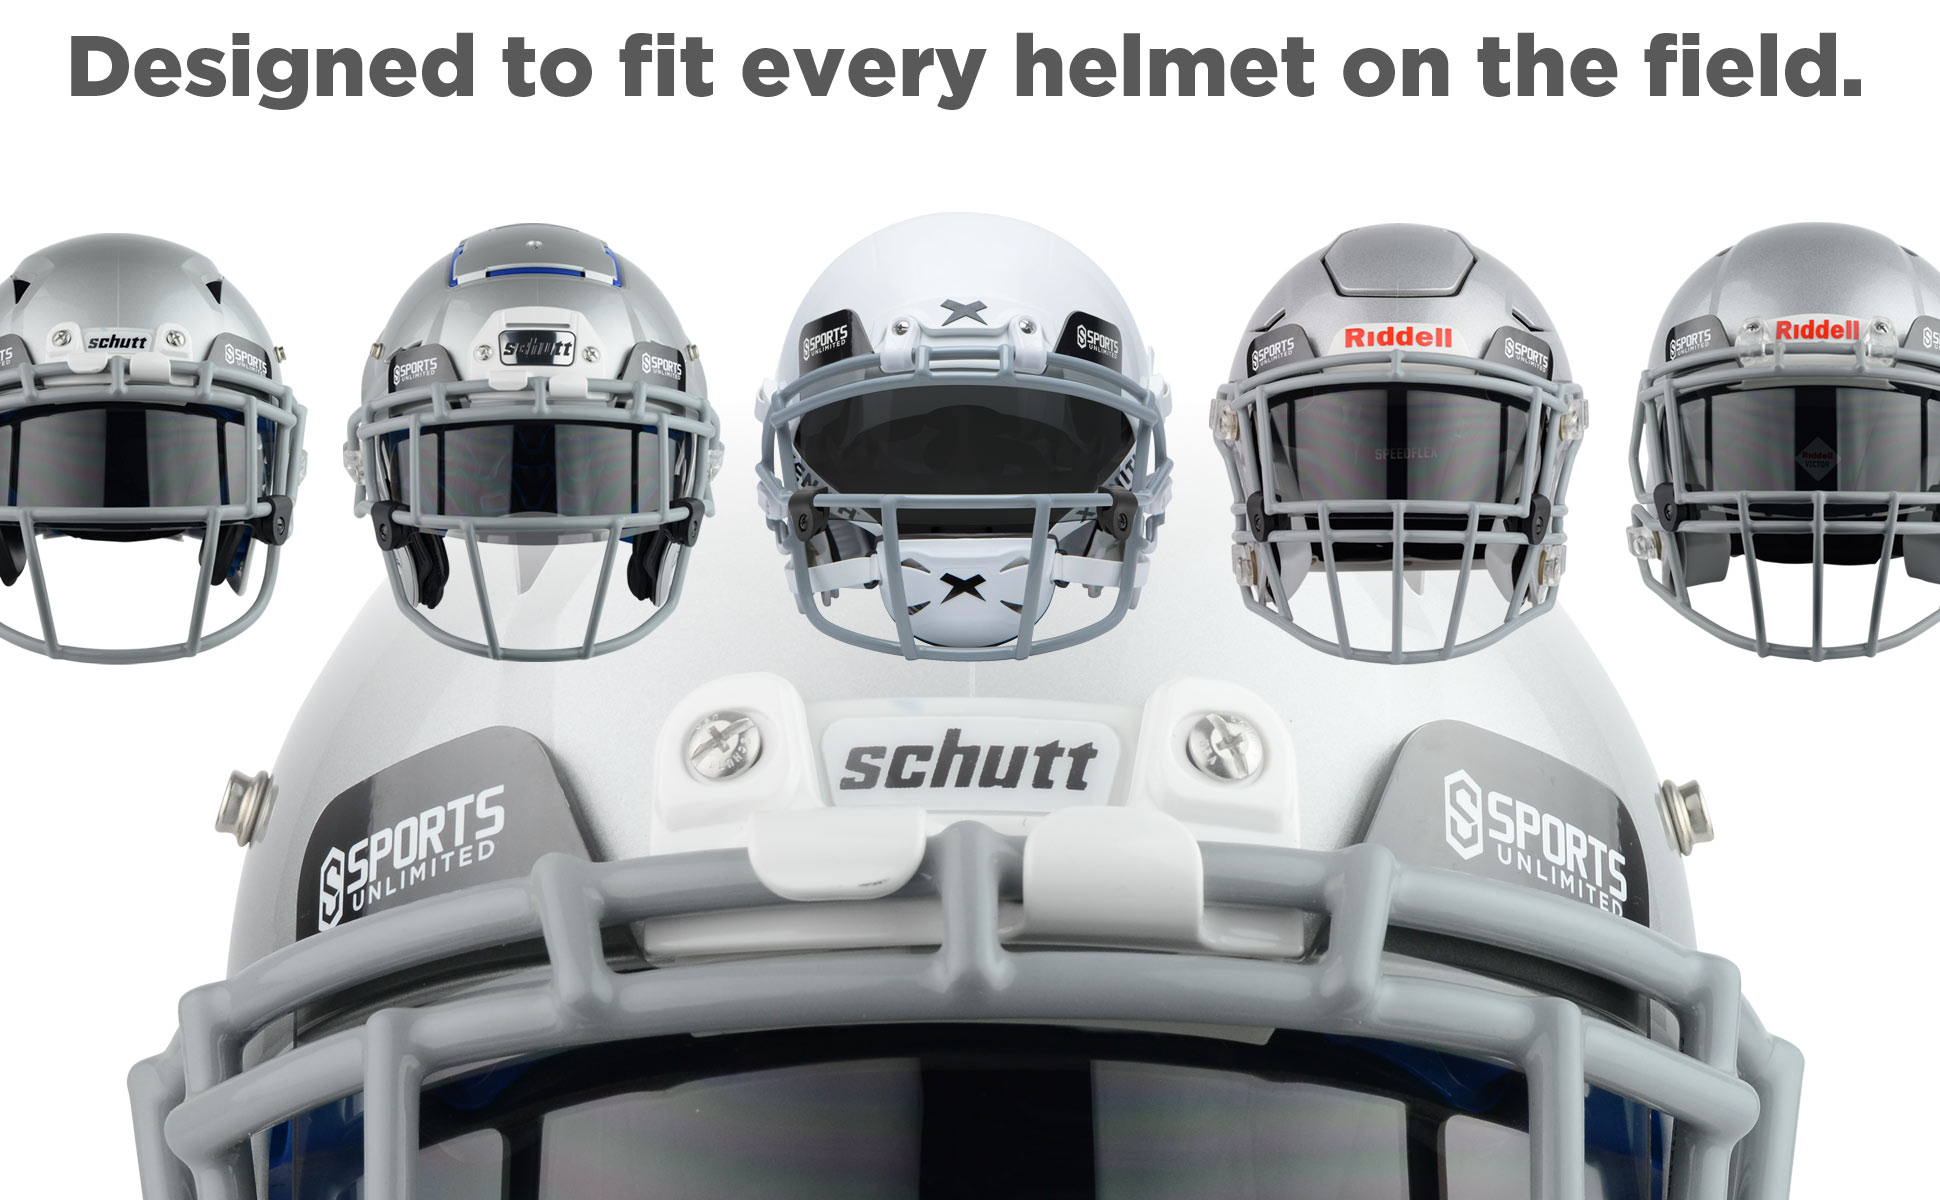 Fits Every Helmet on the Field